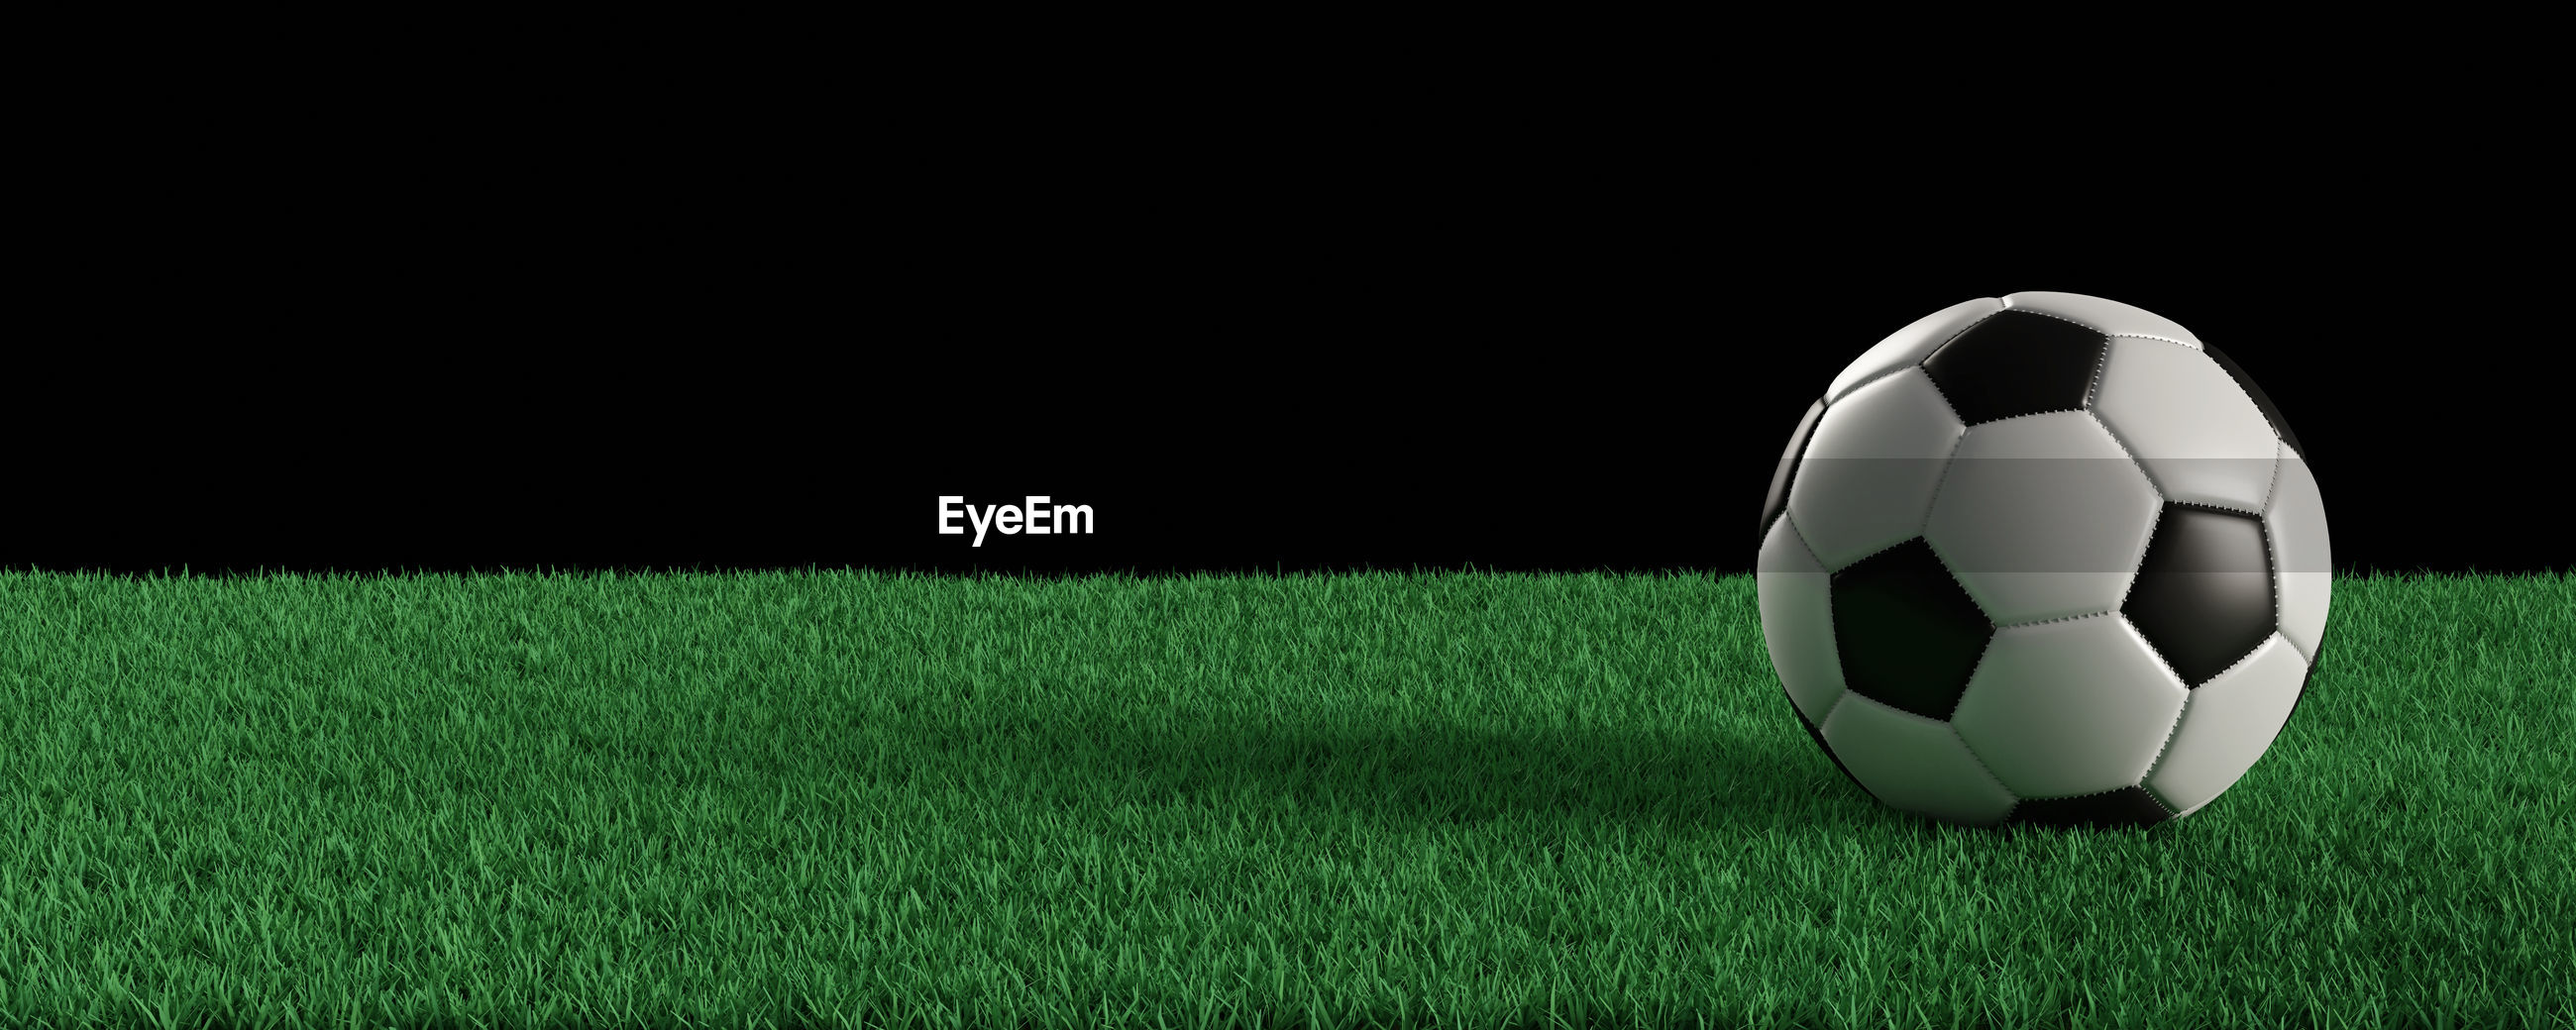 Panoramic view of soccer ball on turf against black background